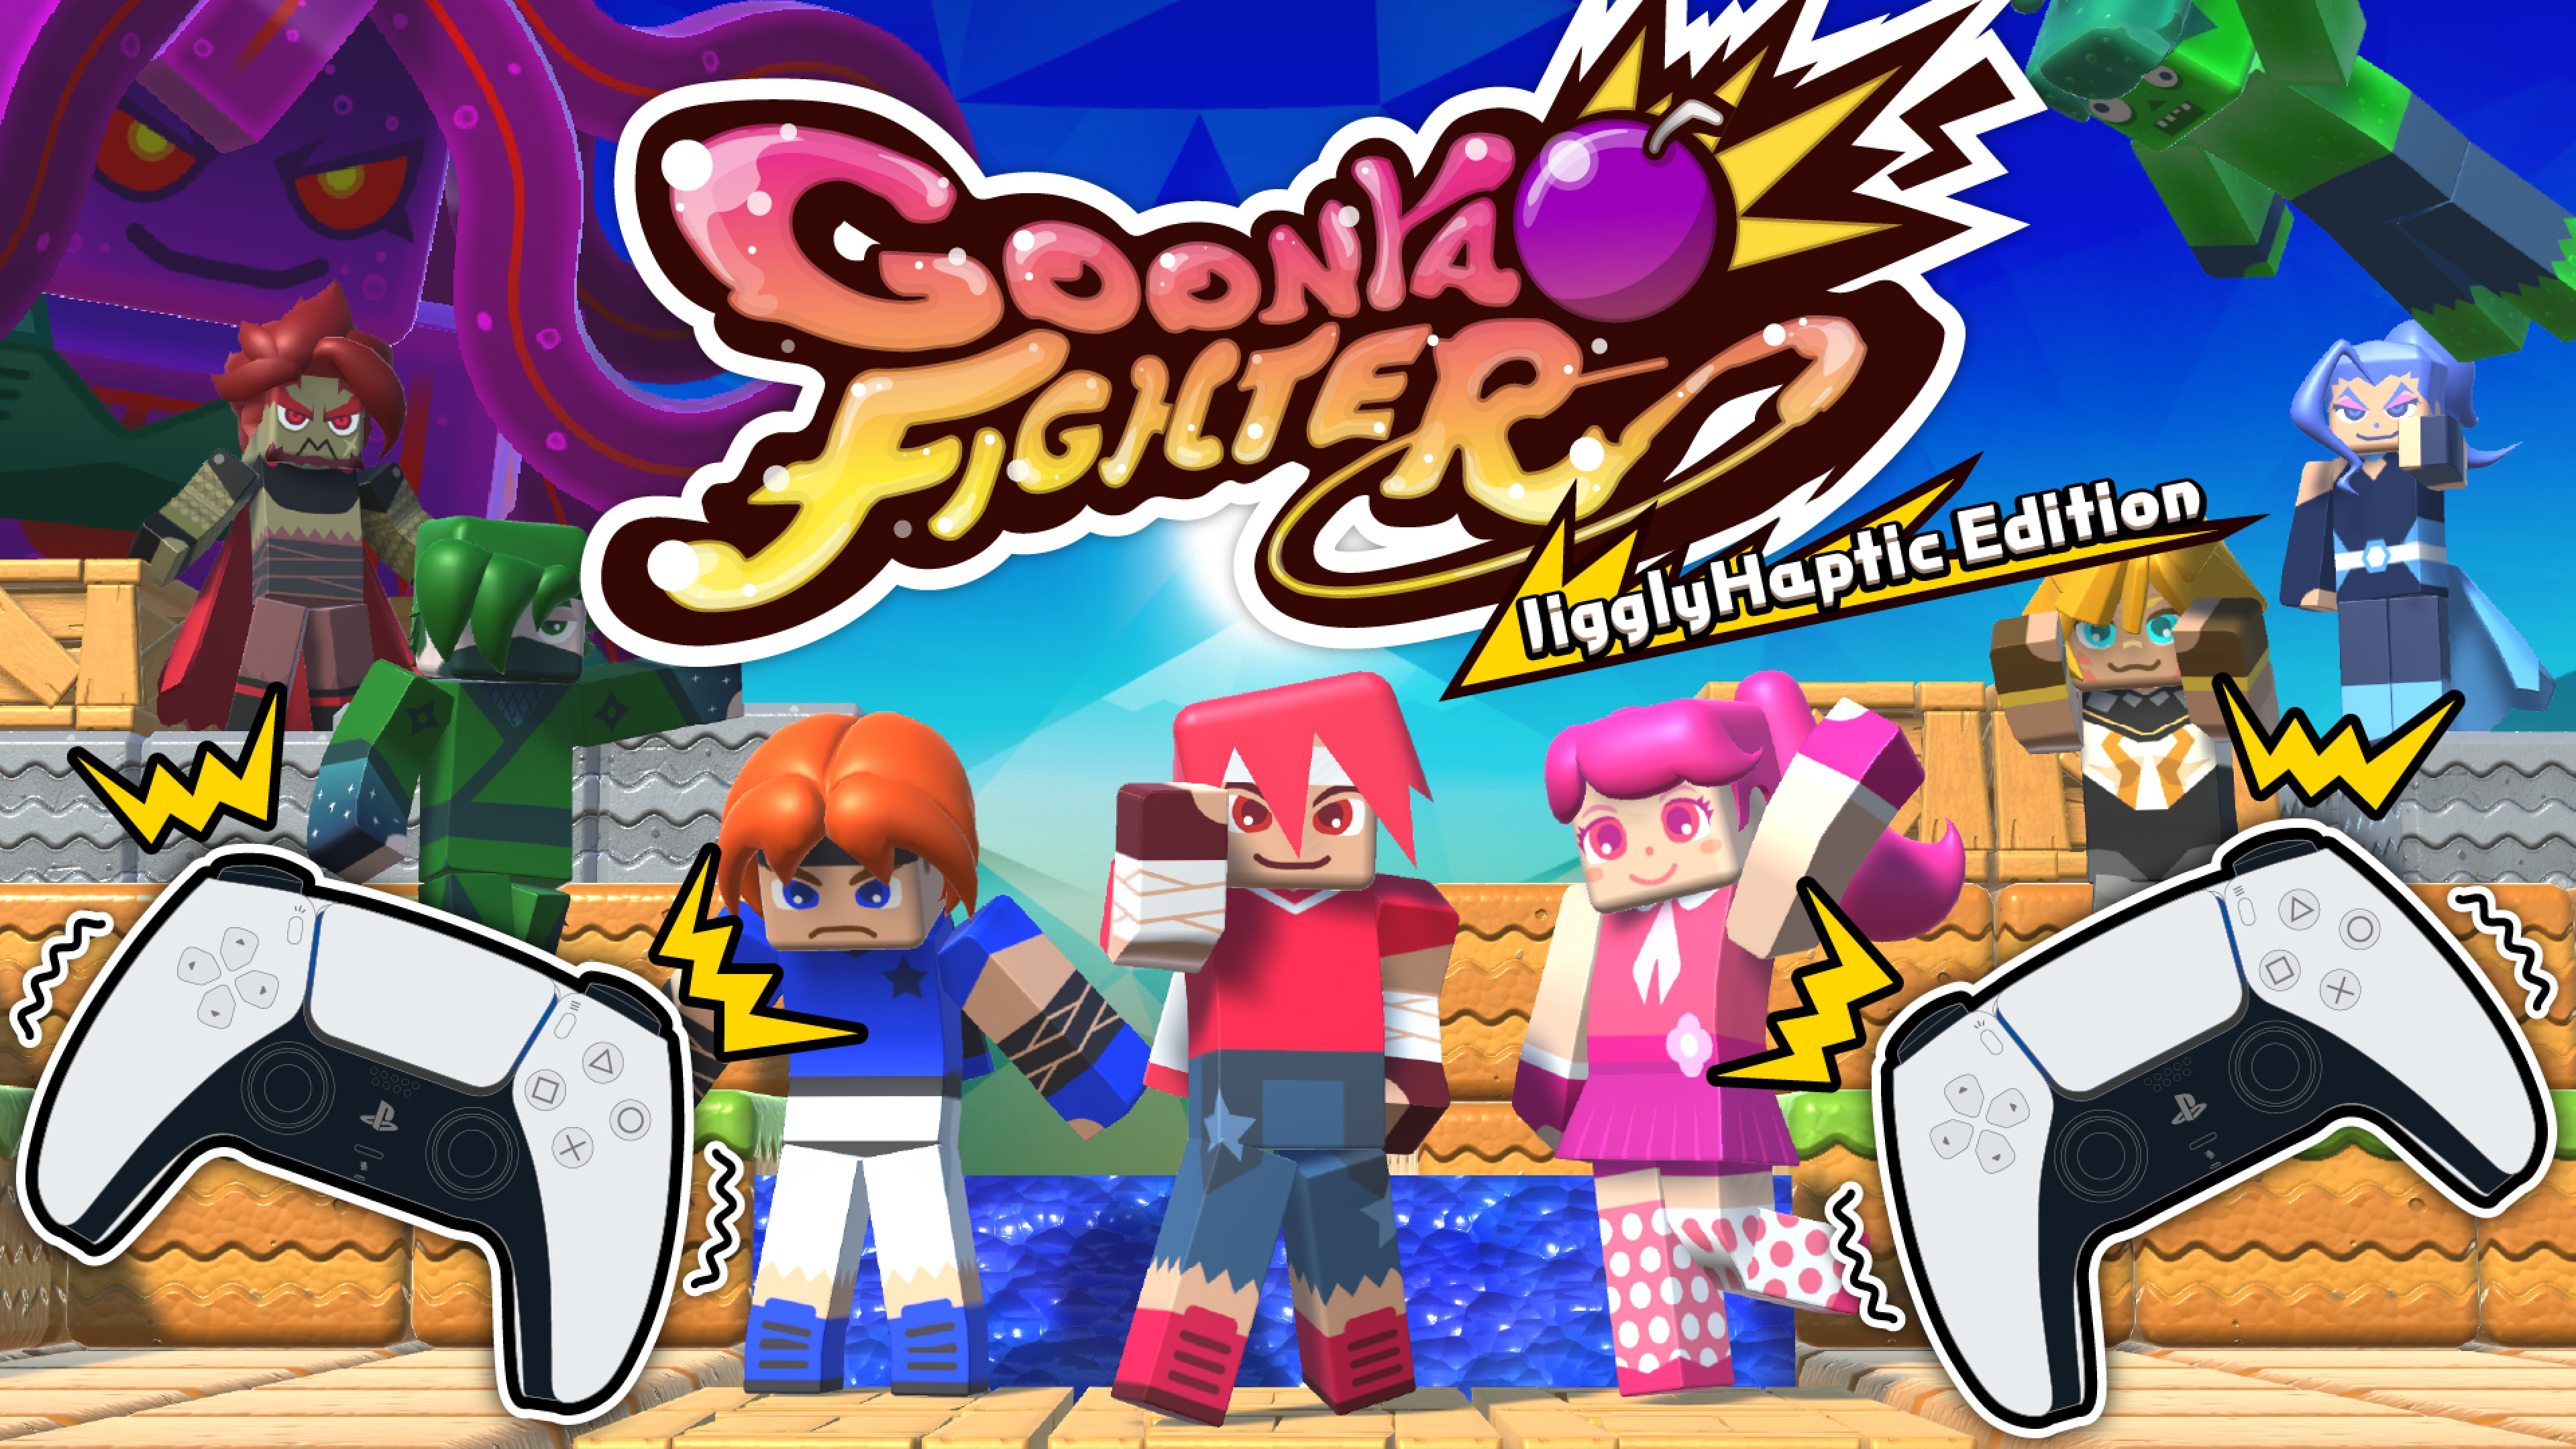 GoonyaFighter JigglyHapticEdition